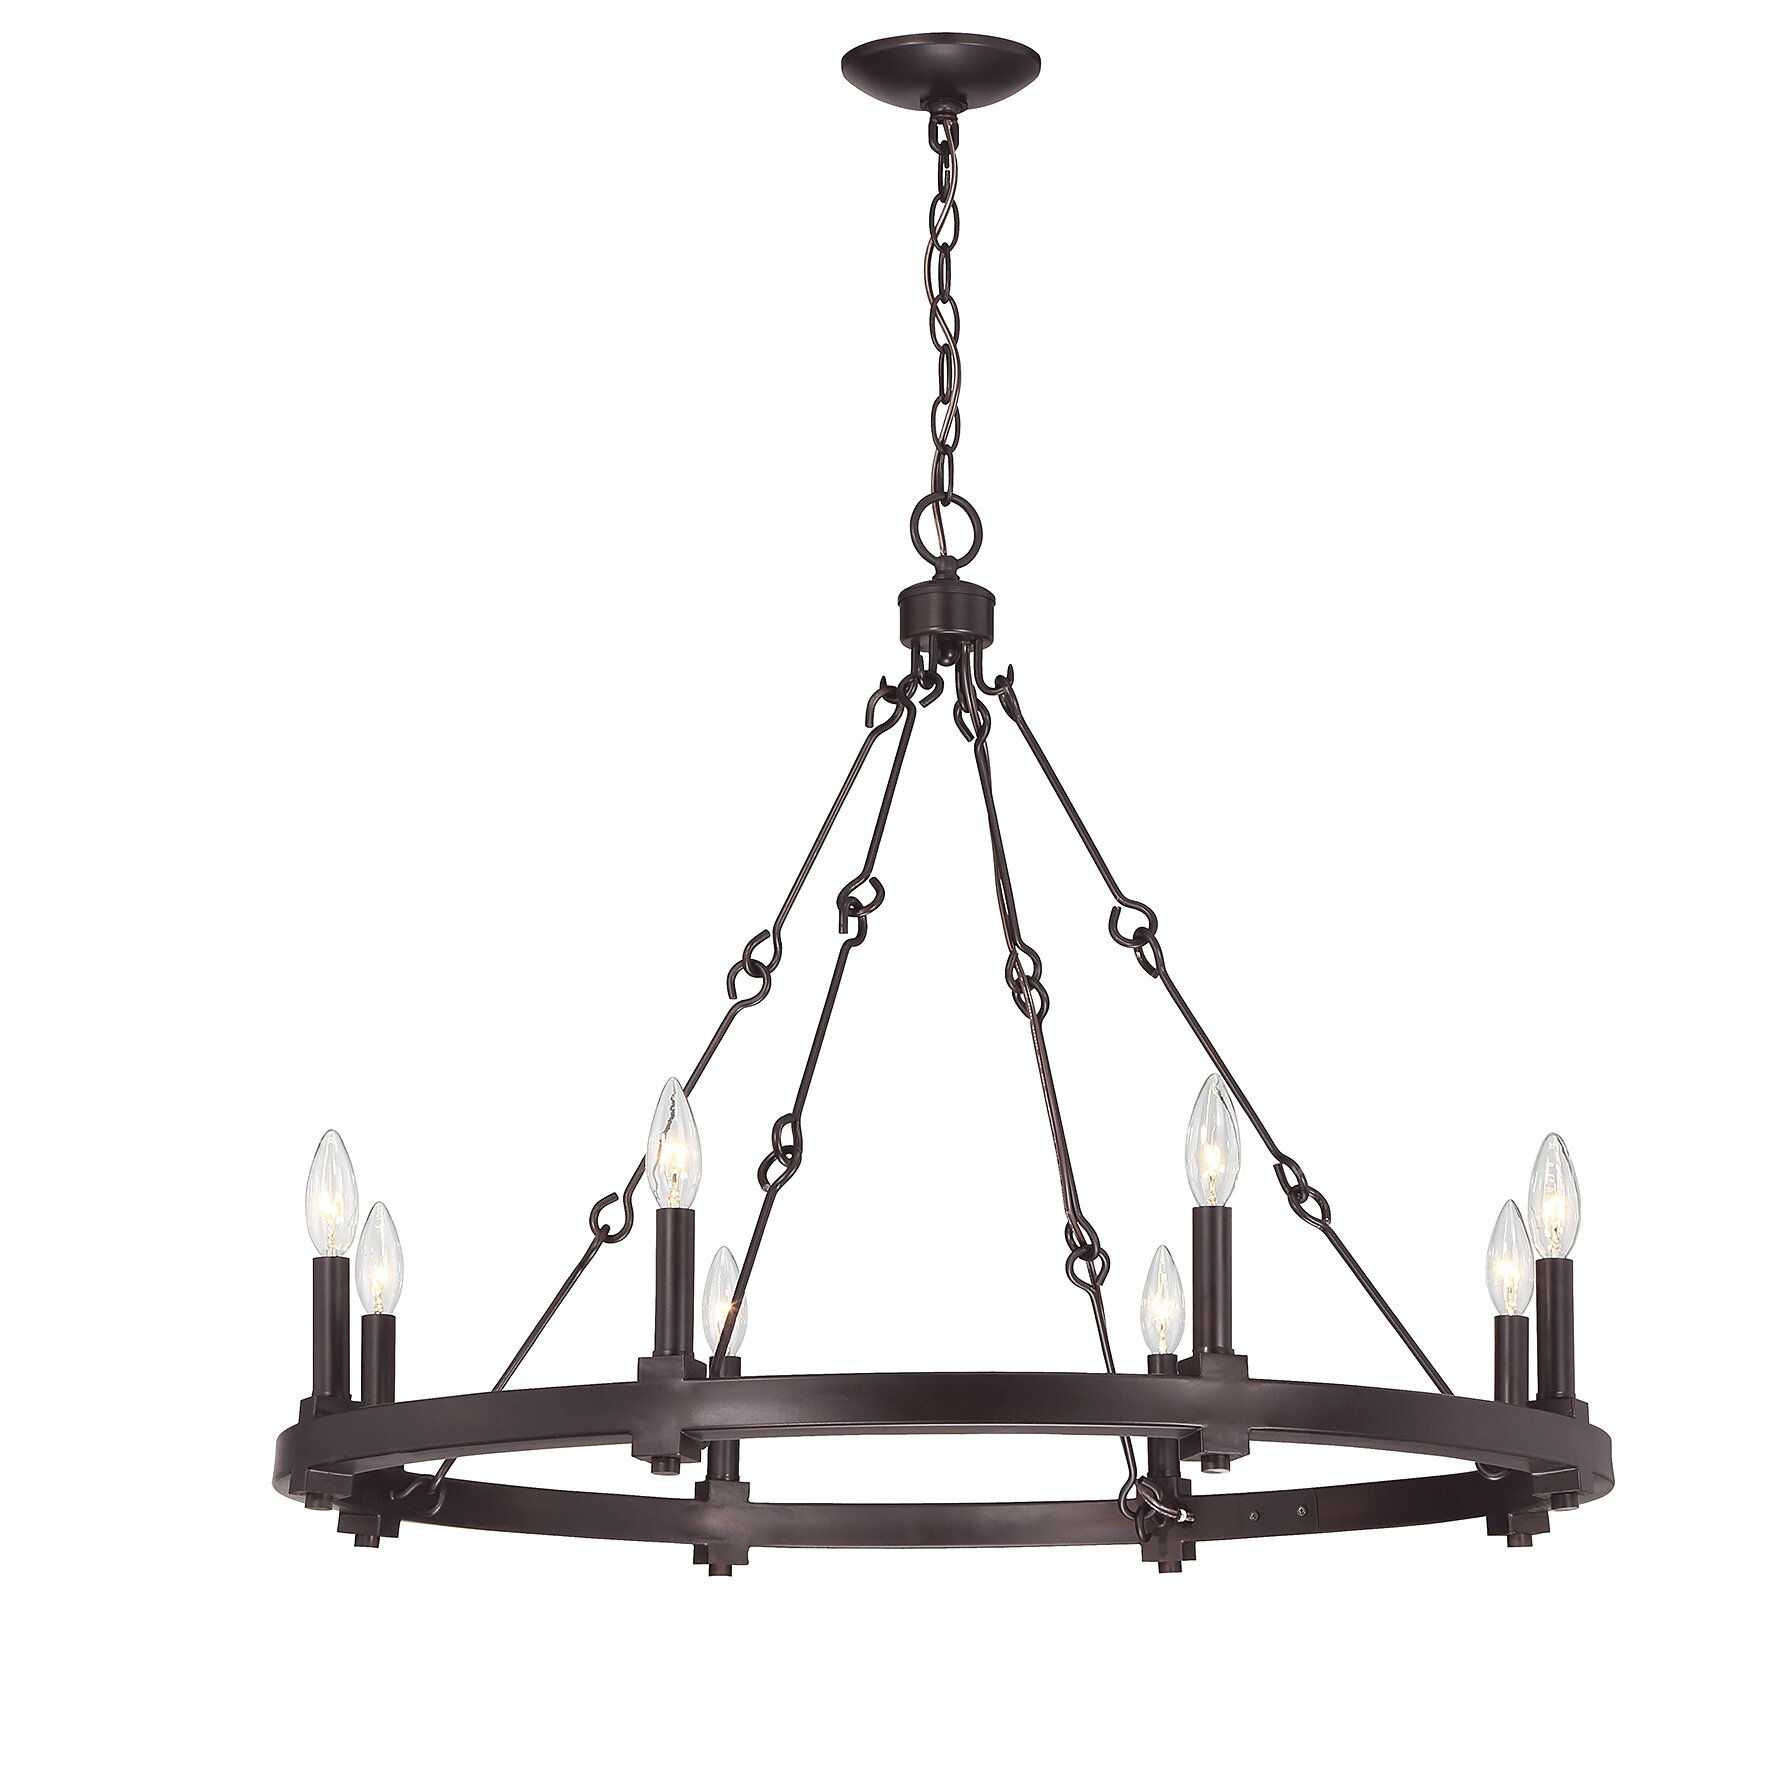 Laurel Foundry Modern Farmhouse Montreal 8 Light Candle Chandelier & Reviews